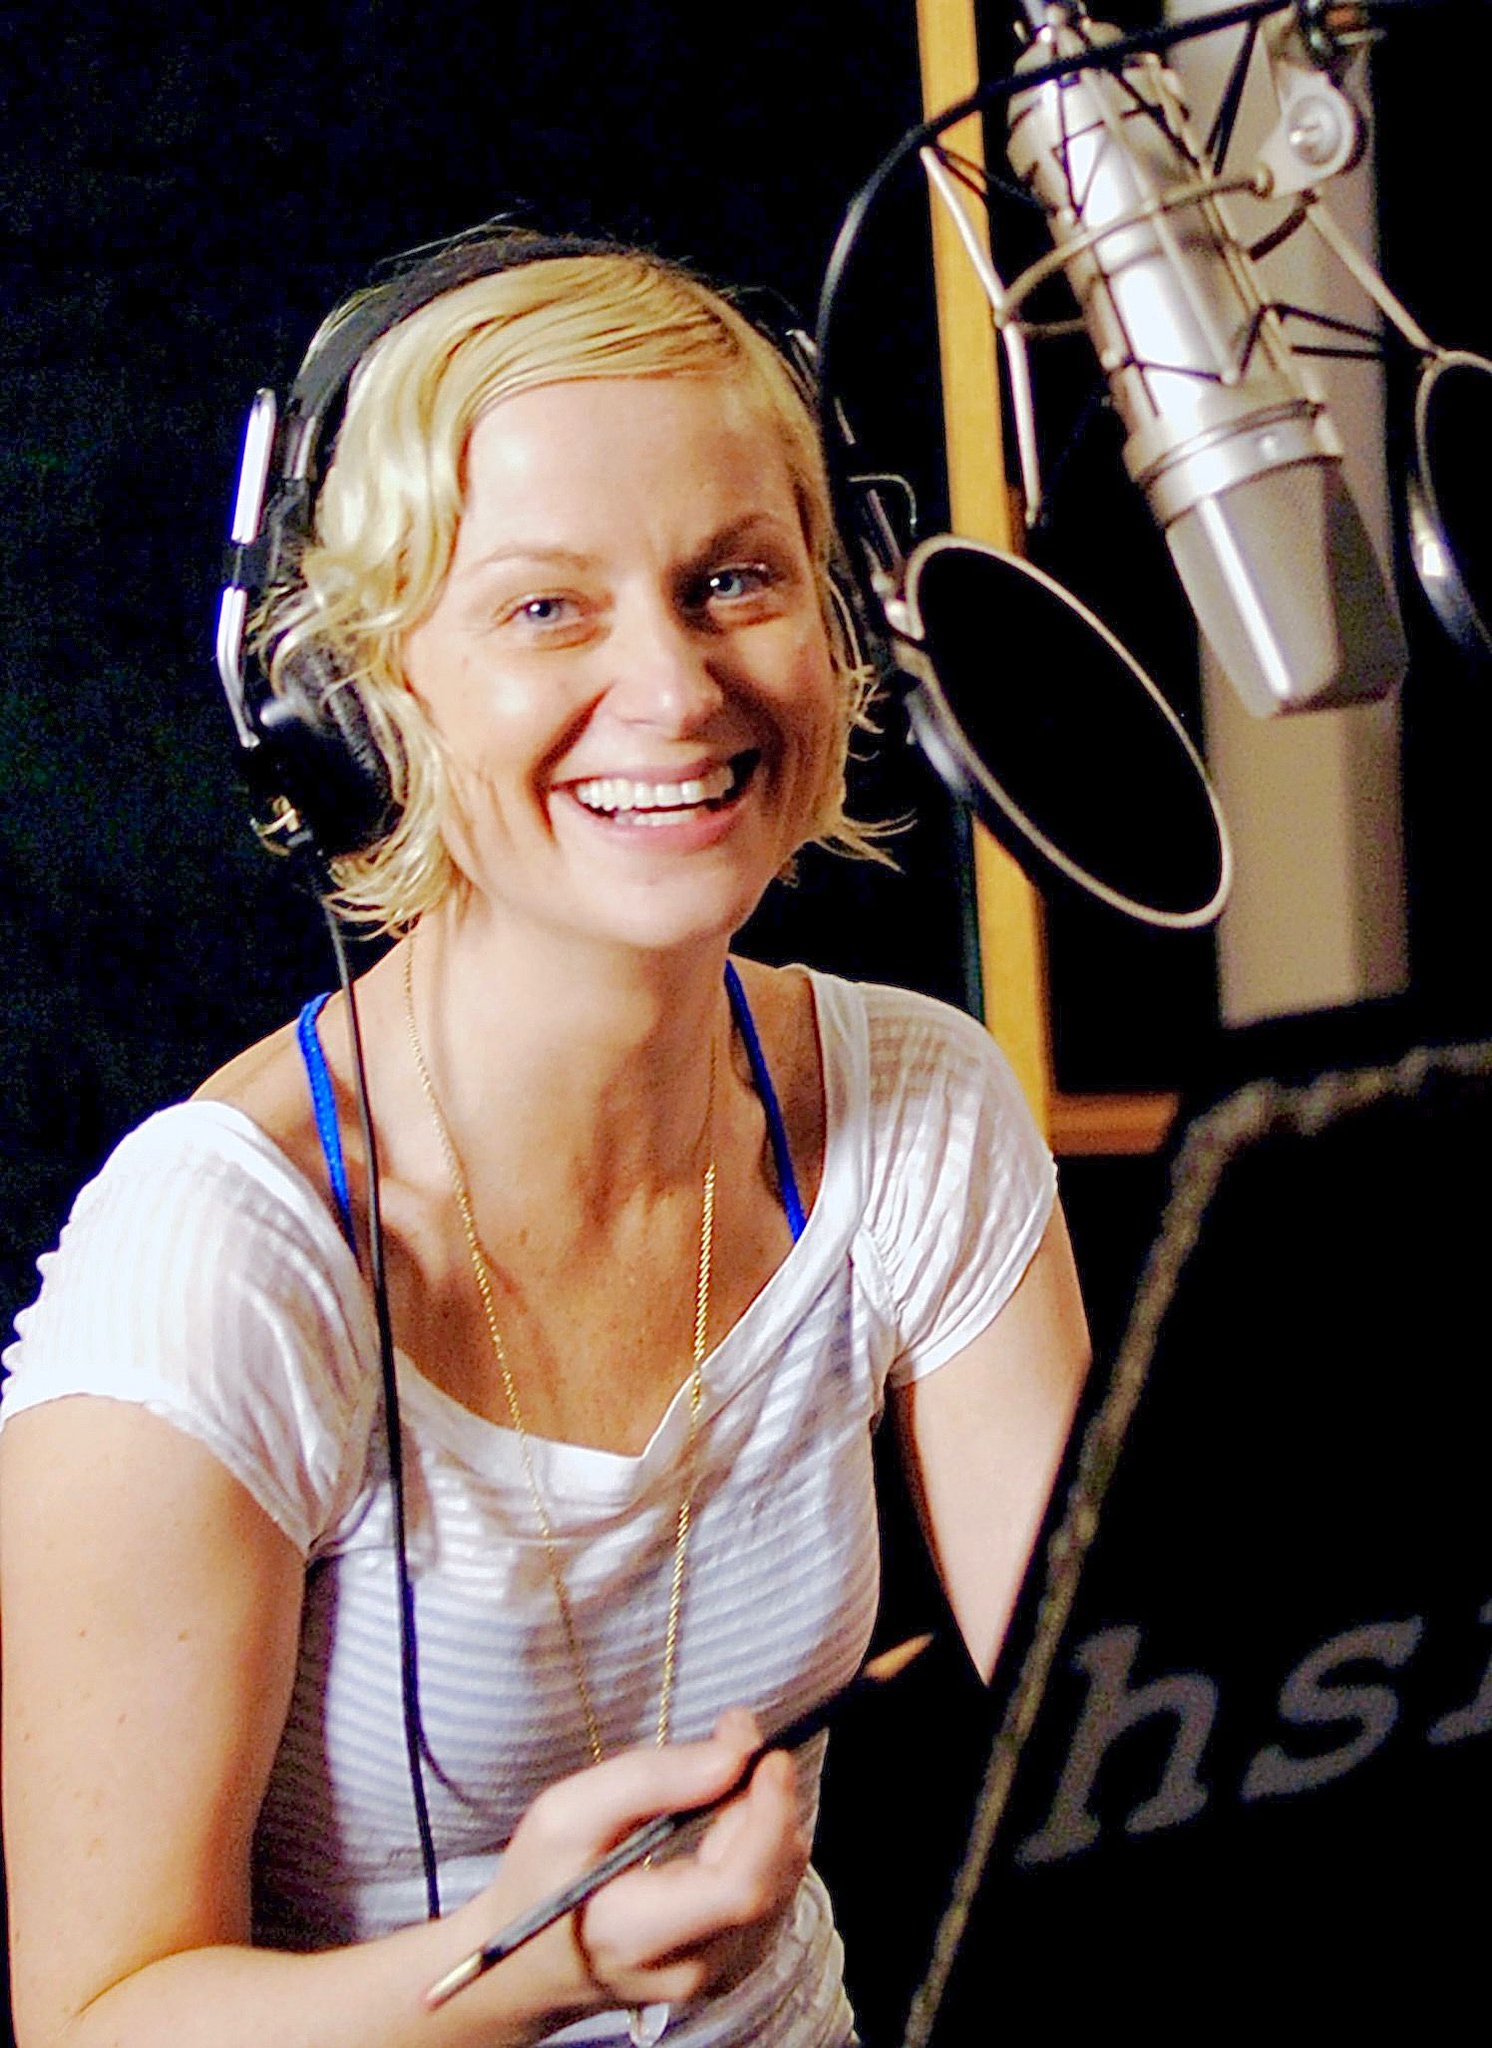 ""\""""People are their most beautiful when they are laughing.""""    Happy birthday, Amy Poehler.""1492|2048|?|en|2|abfaabda930521a8522157d6d1913f88|False|UNLIKELY|0.32764098048210144